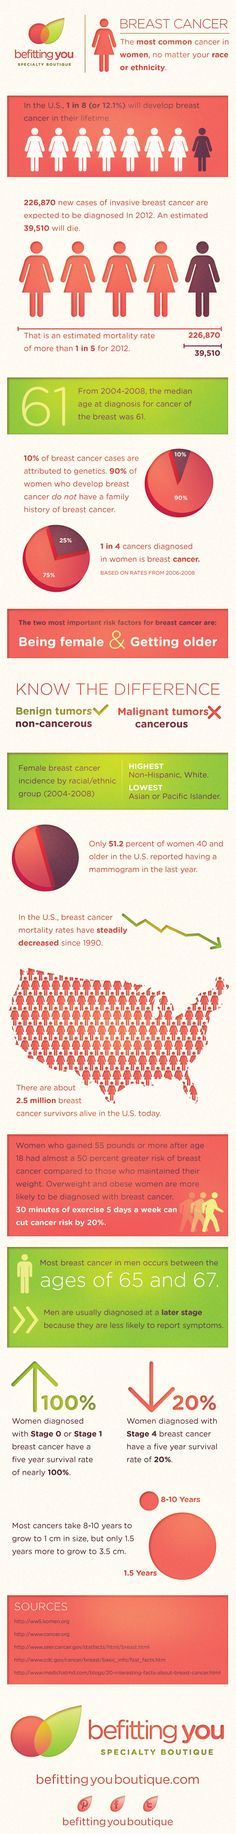 Another Breast Cancer Infographic